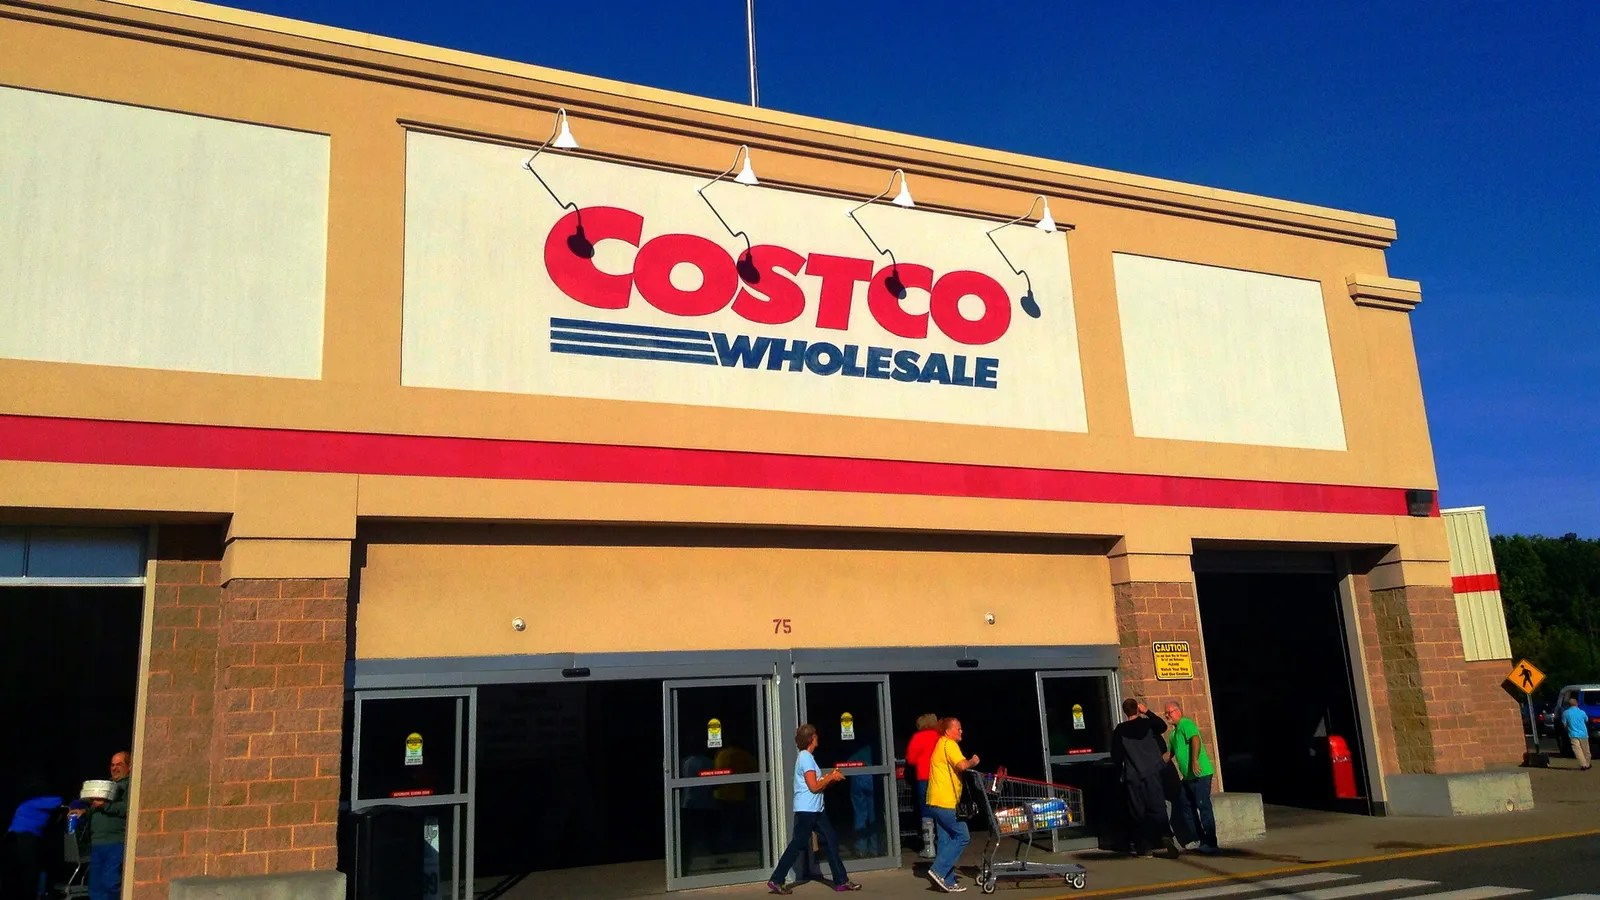 Amazon Grocery Costco Launches Grocery Delivery Program To Compete With Amazon